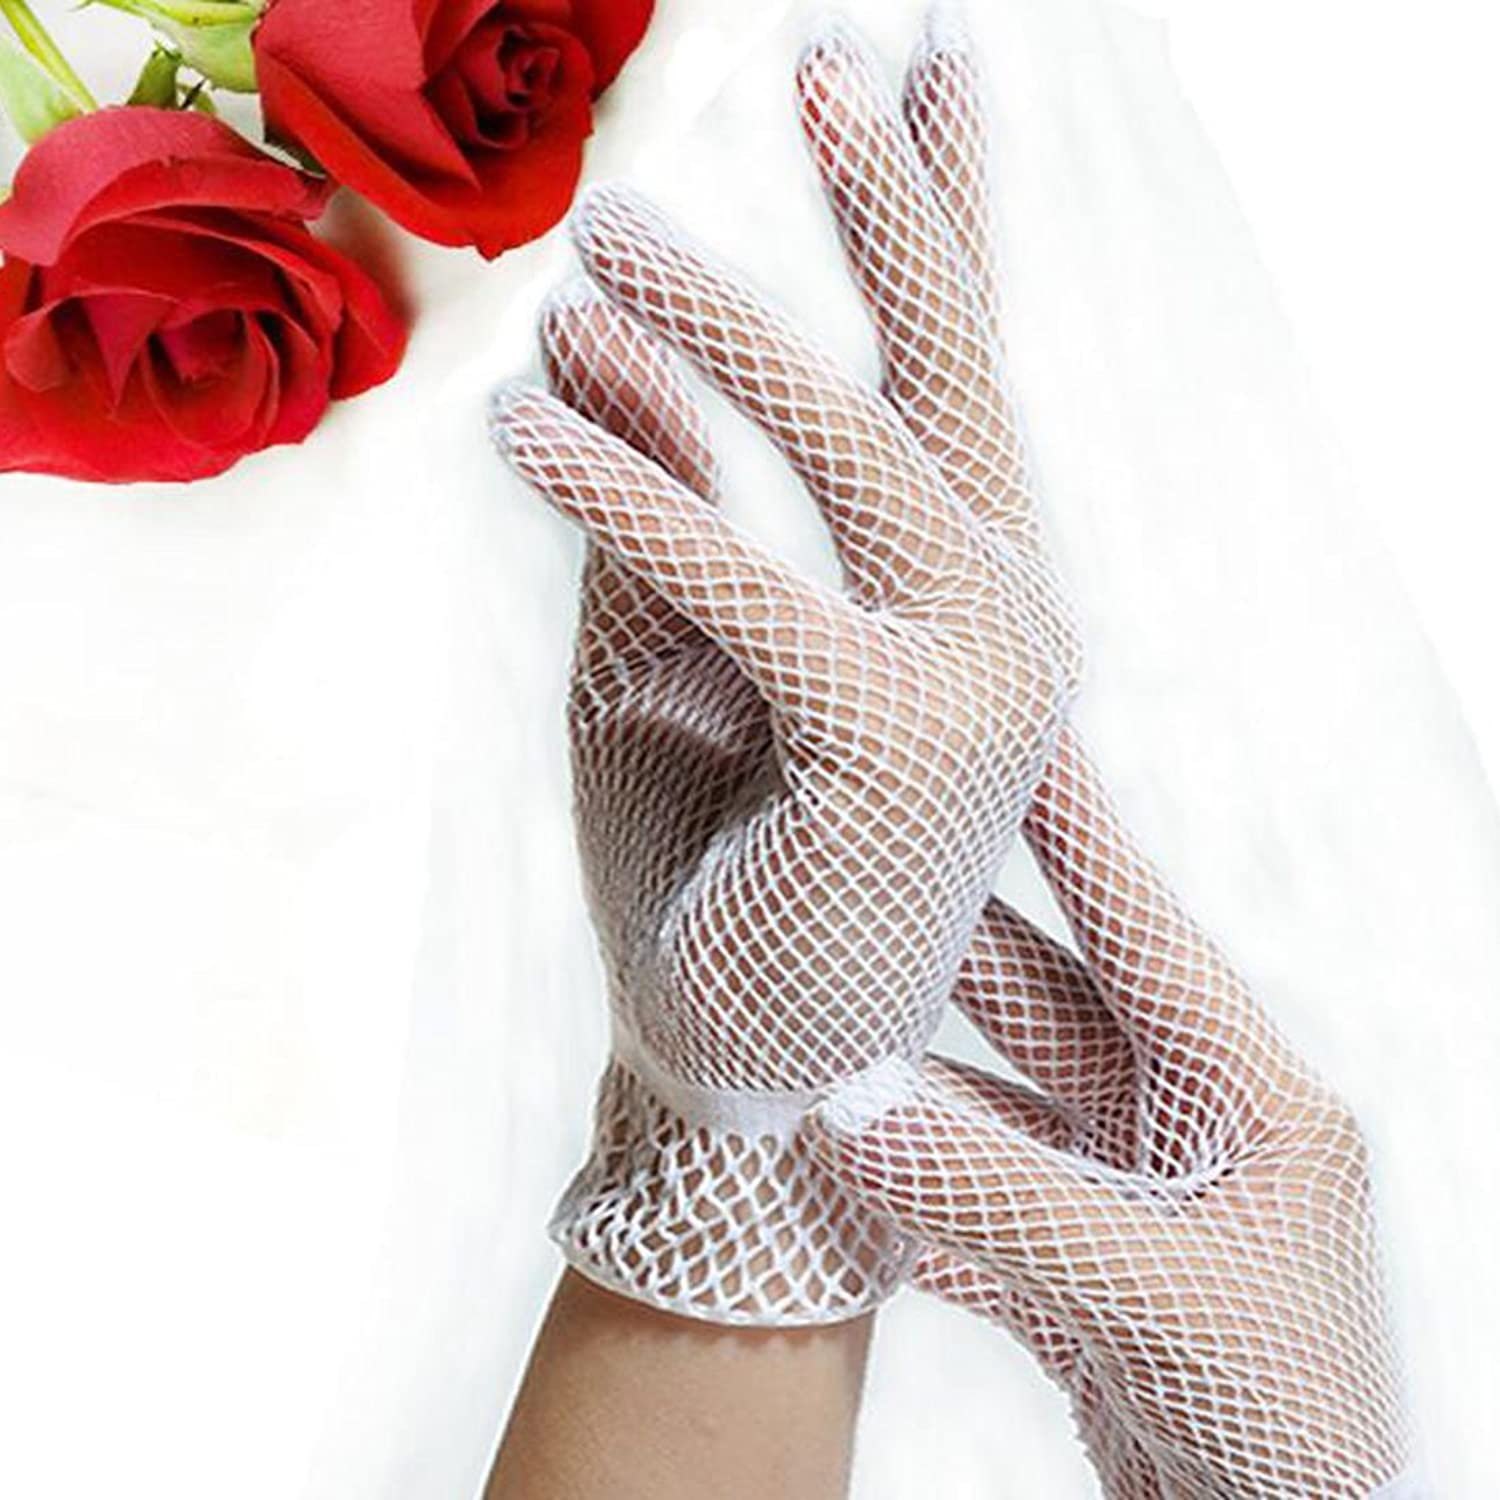 Edwardian Gloves, Handbag, Hair Combs, Wigs Fishnet Mesh Gloves Fashion Women Gloves Summer UV Protection Lace Glove White $2.11 AT vintagedancer.com